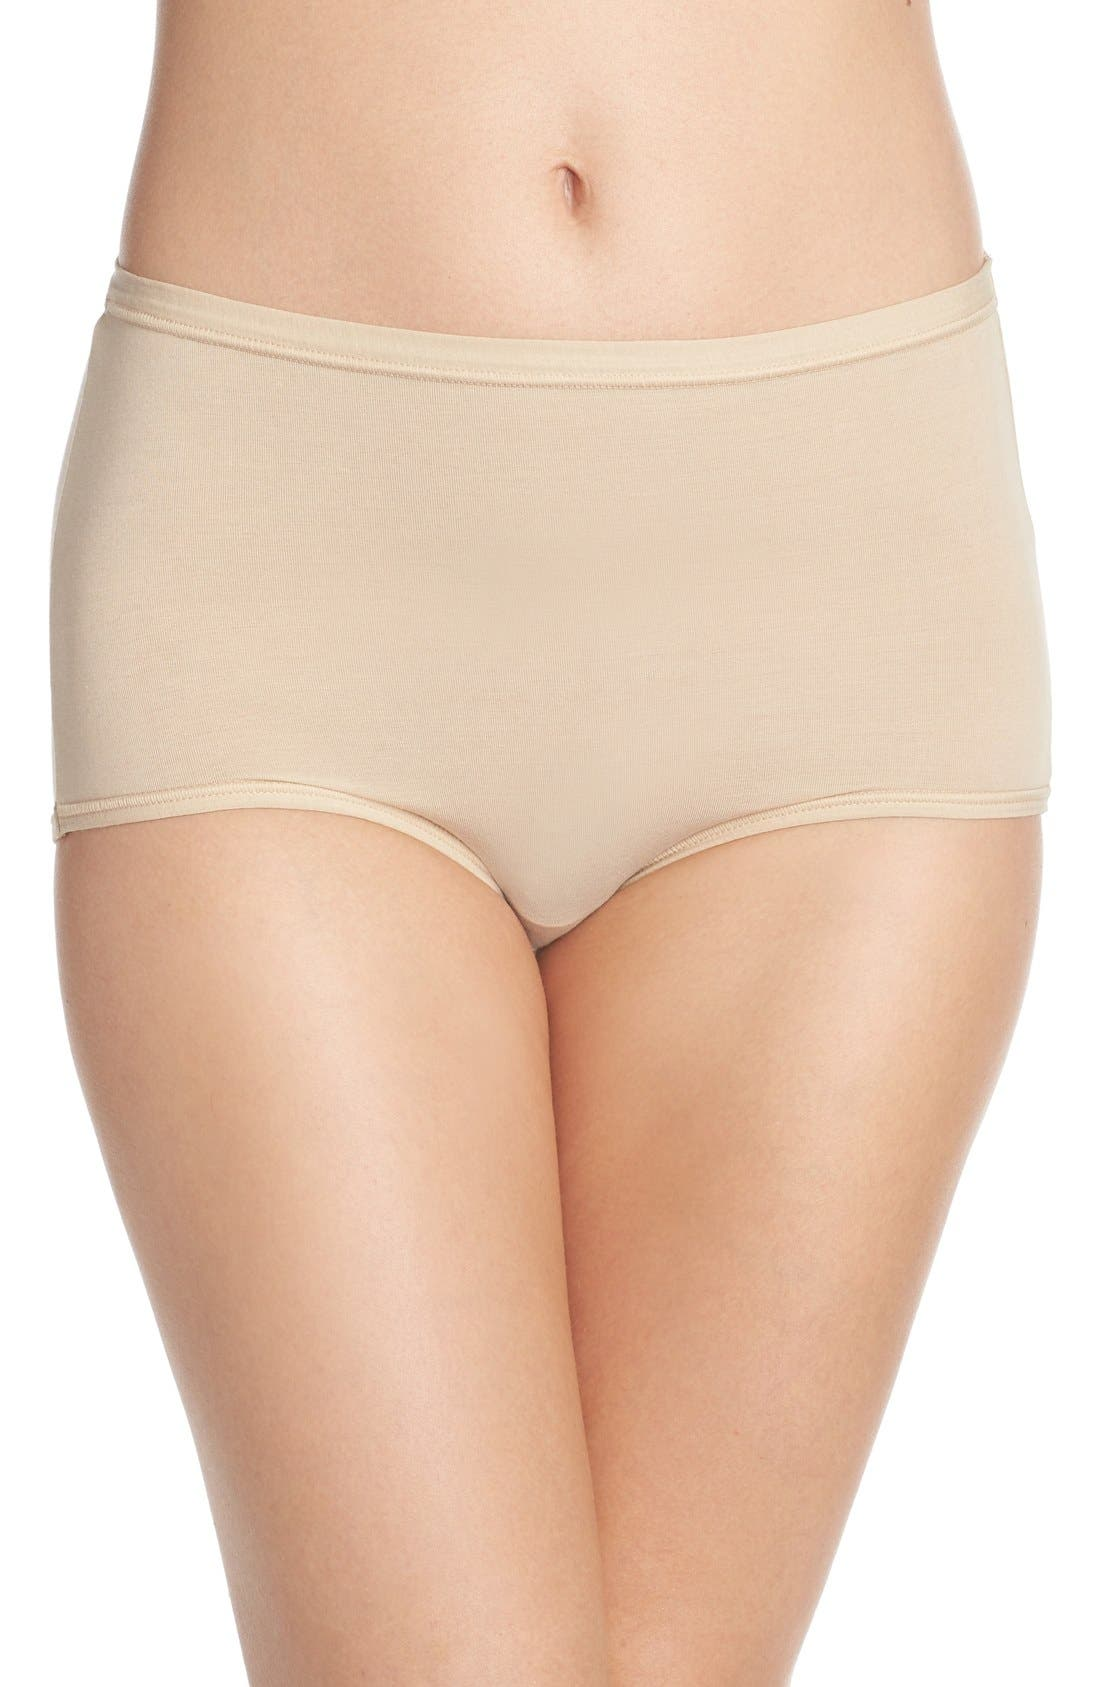 B Fitting Briefs,                             Main thumbnail 1, color,                             Nude